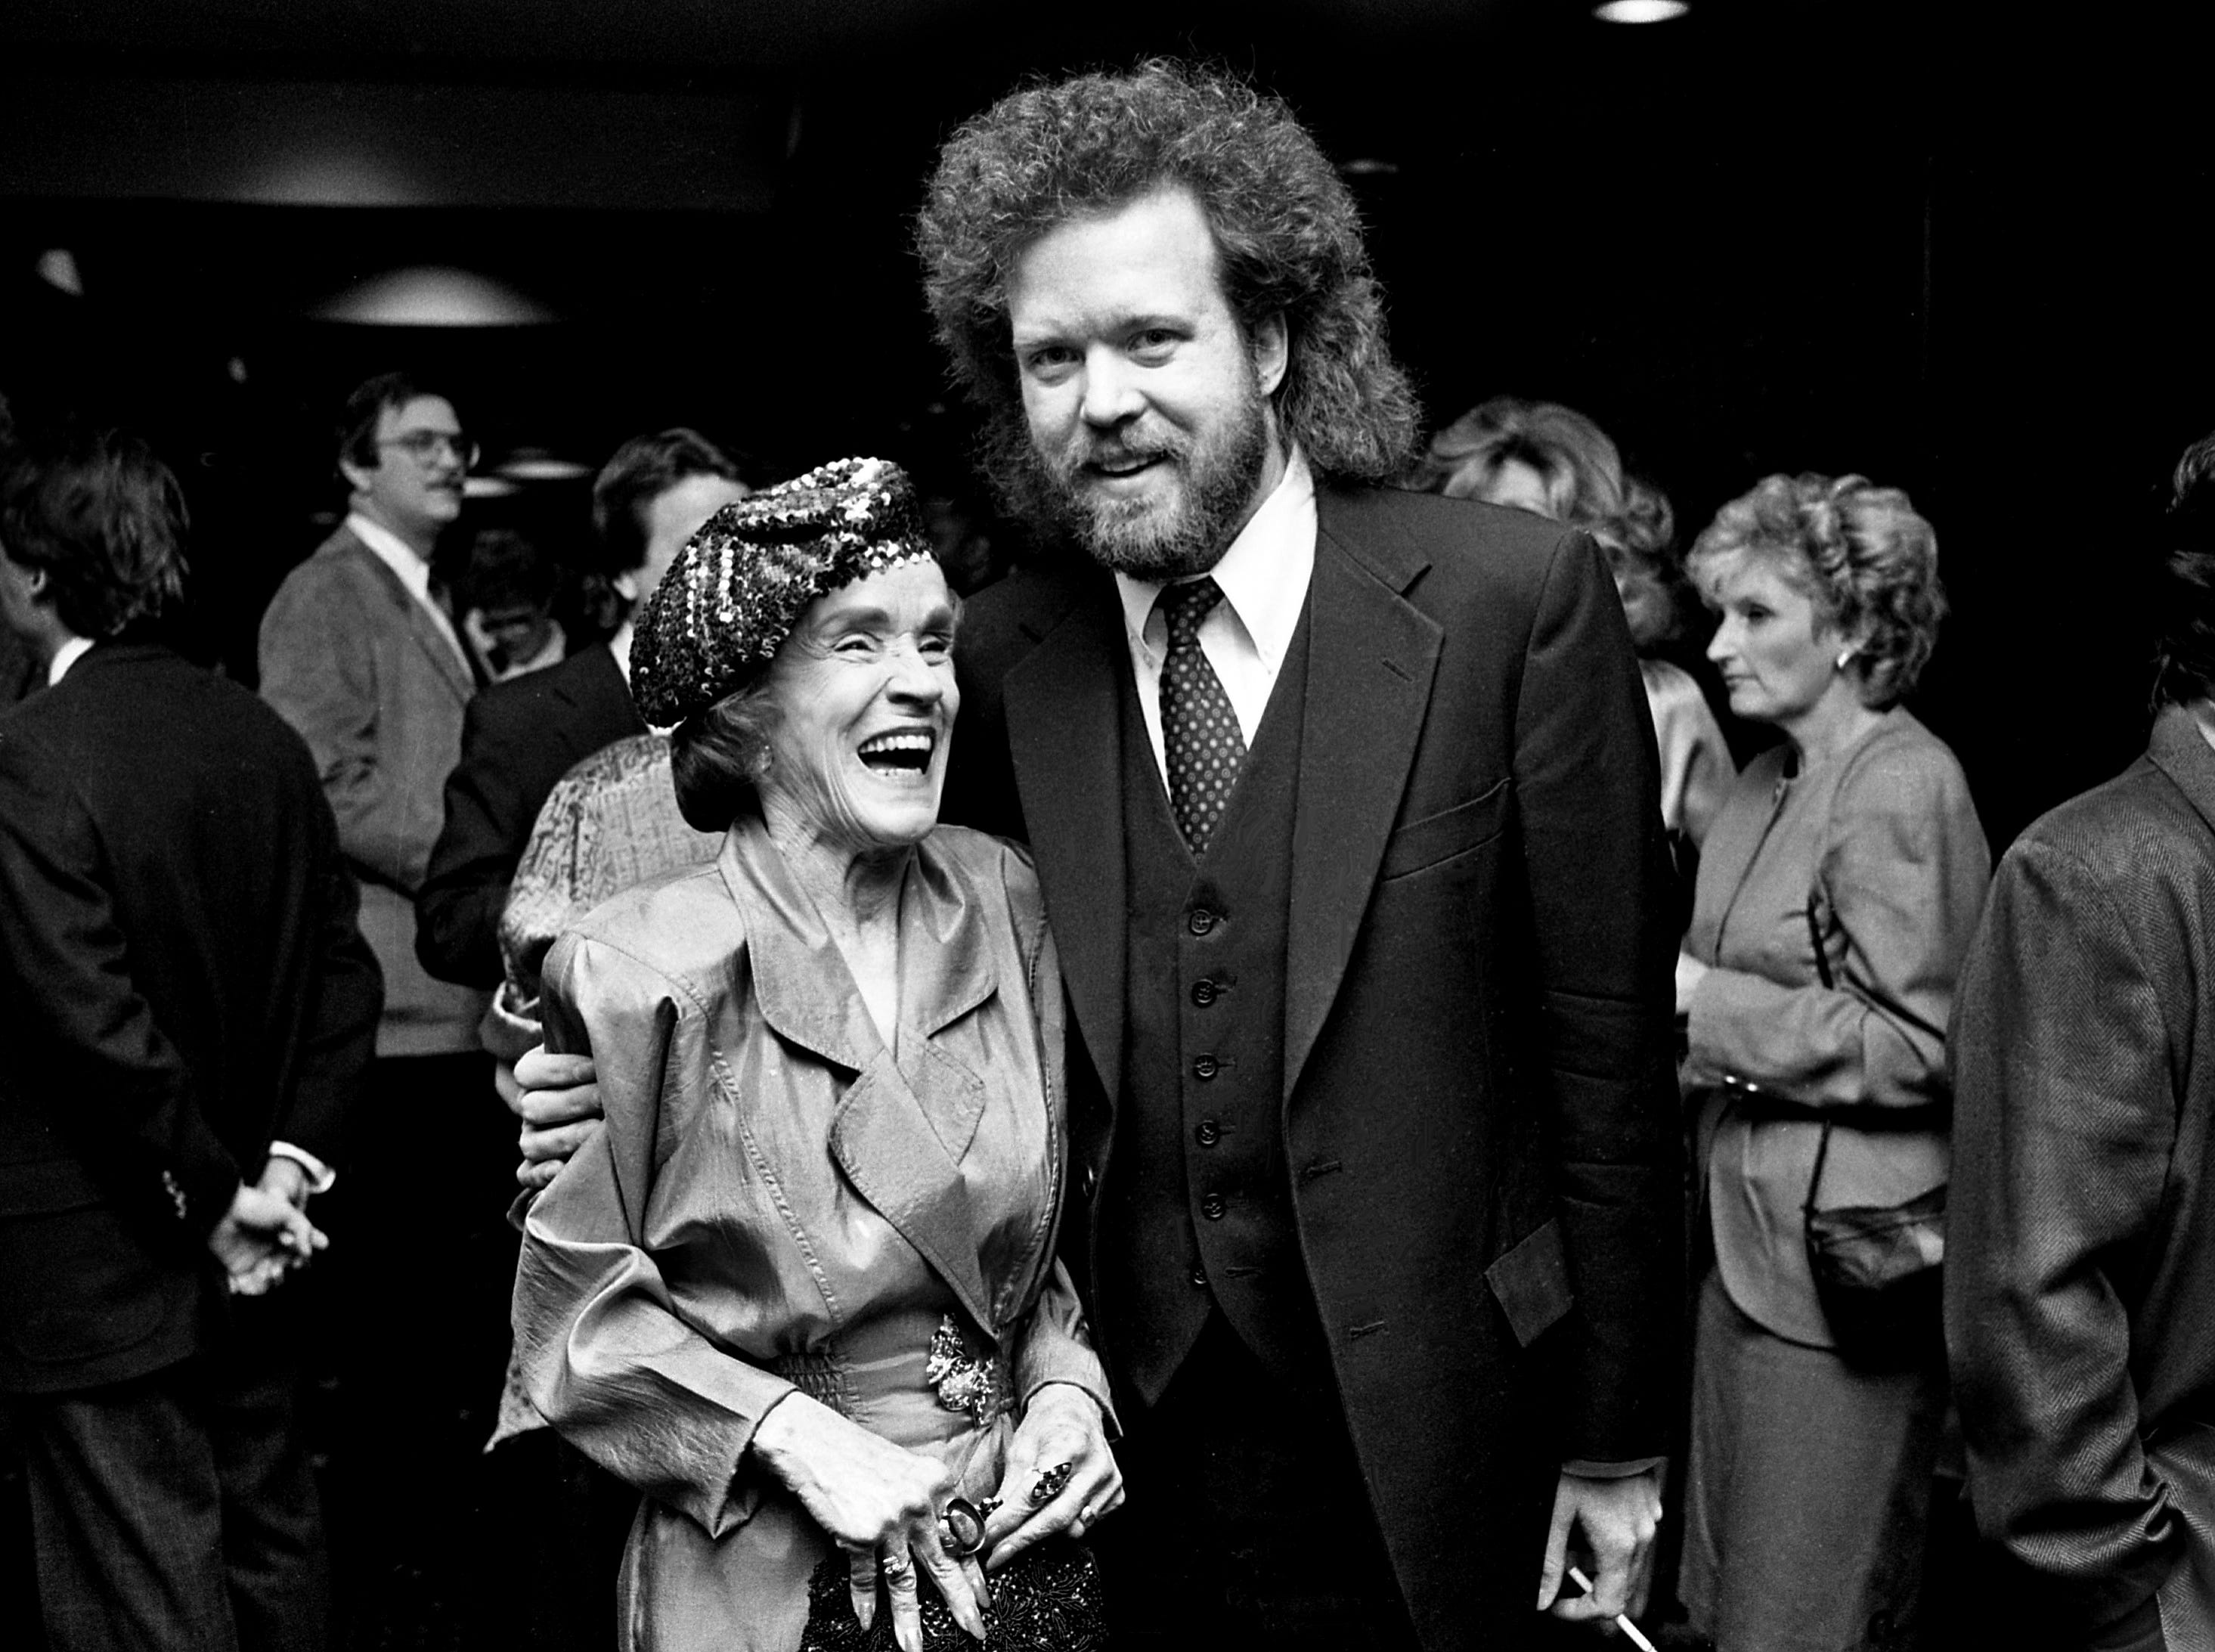 Songwriter Don Schlitz, right, hugs NSAI Executive Director Maggie Cavender before the start of the Nashville Songwriters Association Songwriter Achievement Awards show at Vanderbilt Plaza on Feb. 19, 1989.